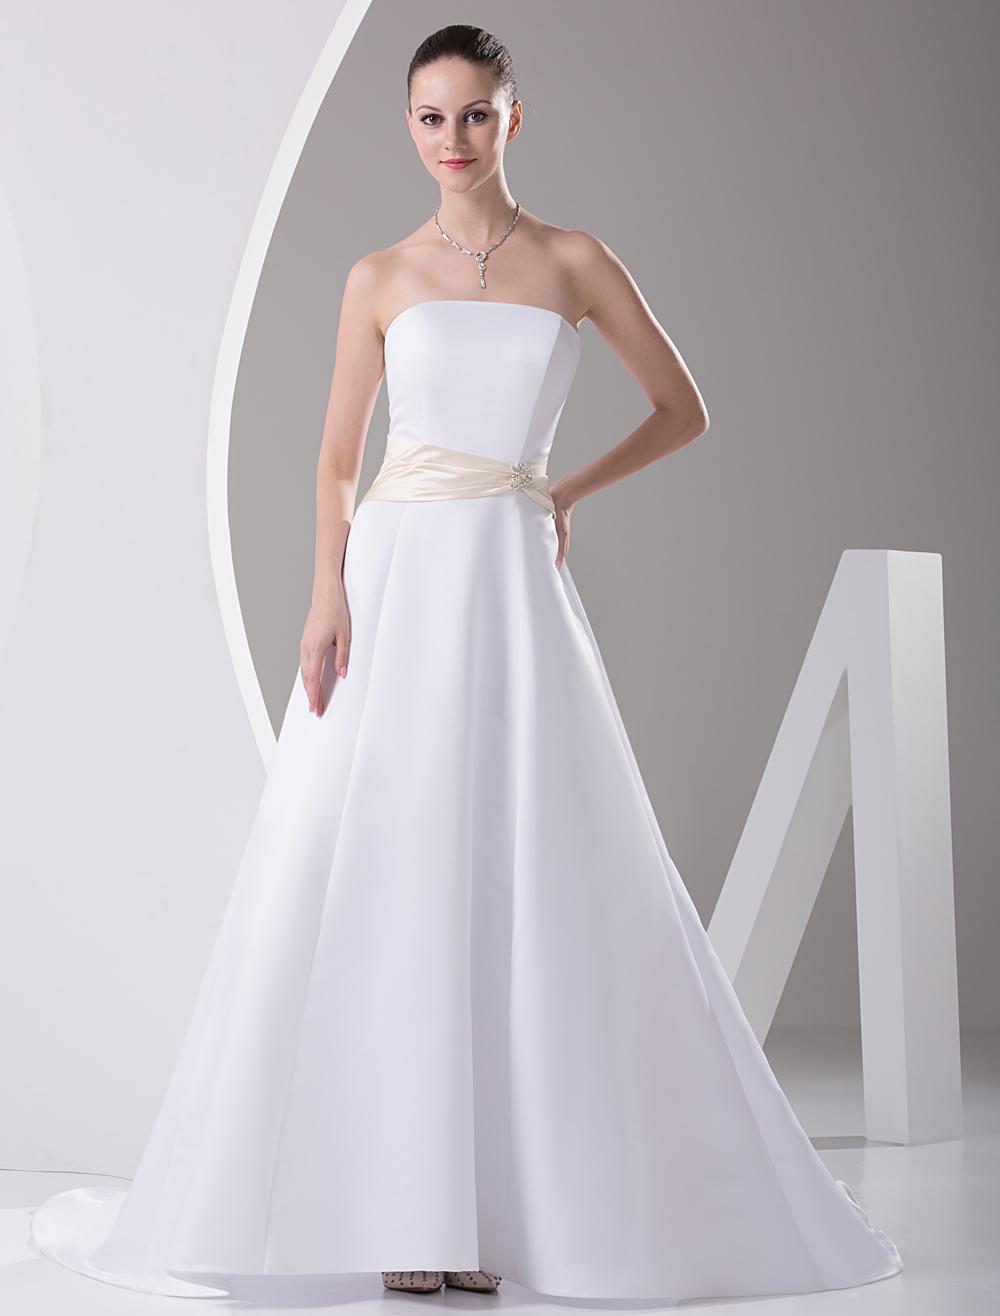 Ivory Strapless Satin Sash Wedding Dress